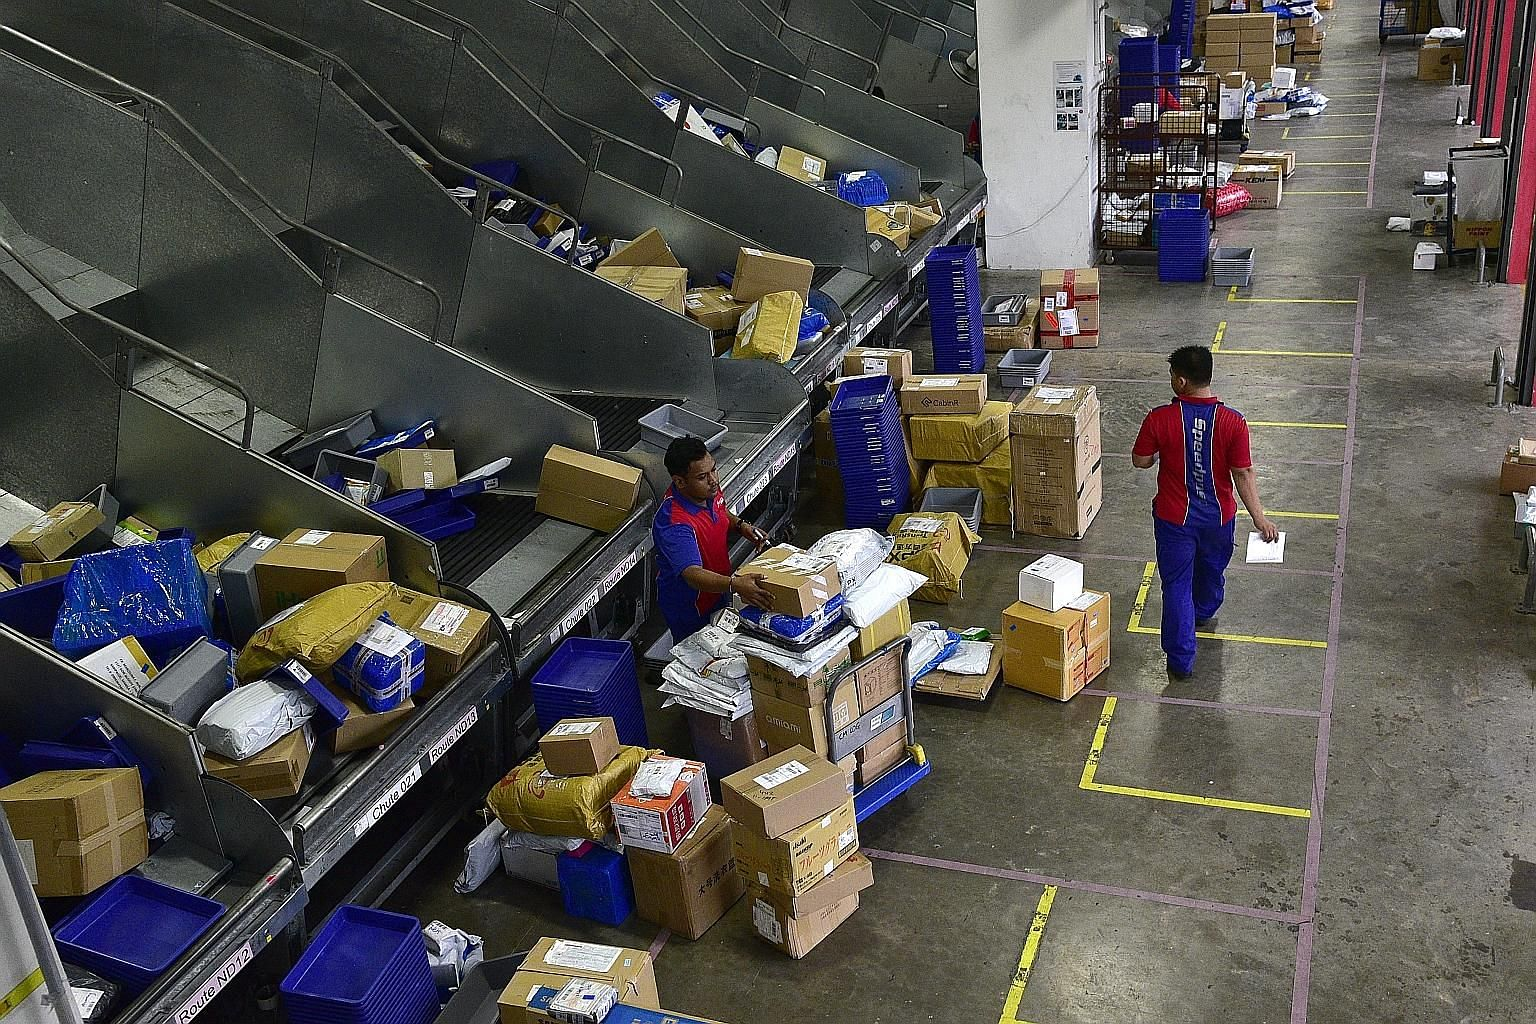 SingPost staff collecting parcels from the cross-belt sorter at the Regional eCommerce Logistics Hub in Greenwich Drive. With the pandemic bringing about a significant rise in e-commerce transactions, the logistics industry must step up to offer a be